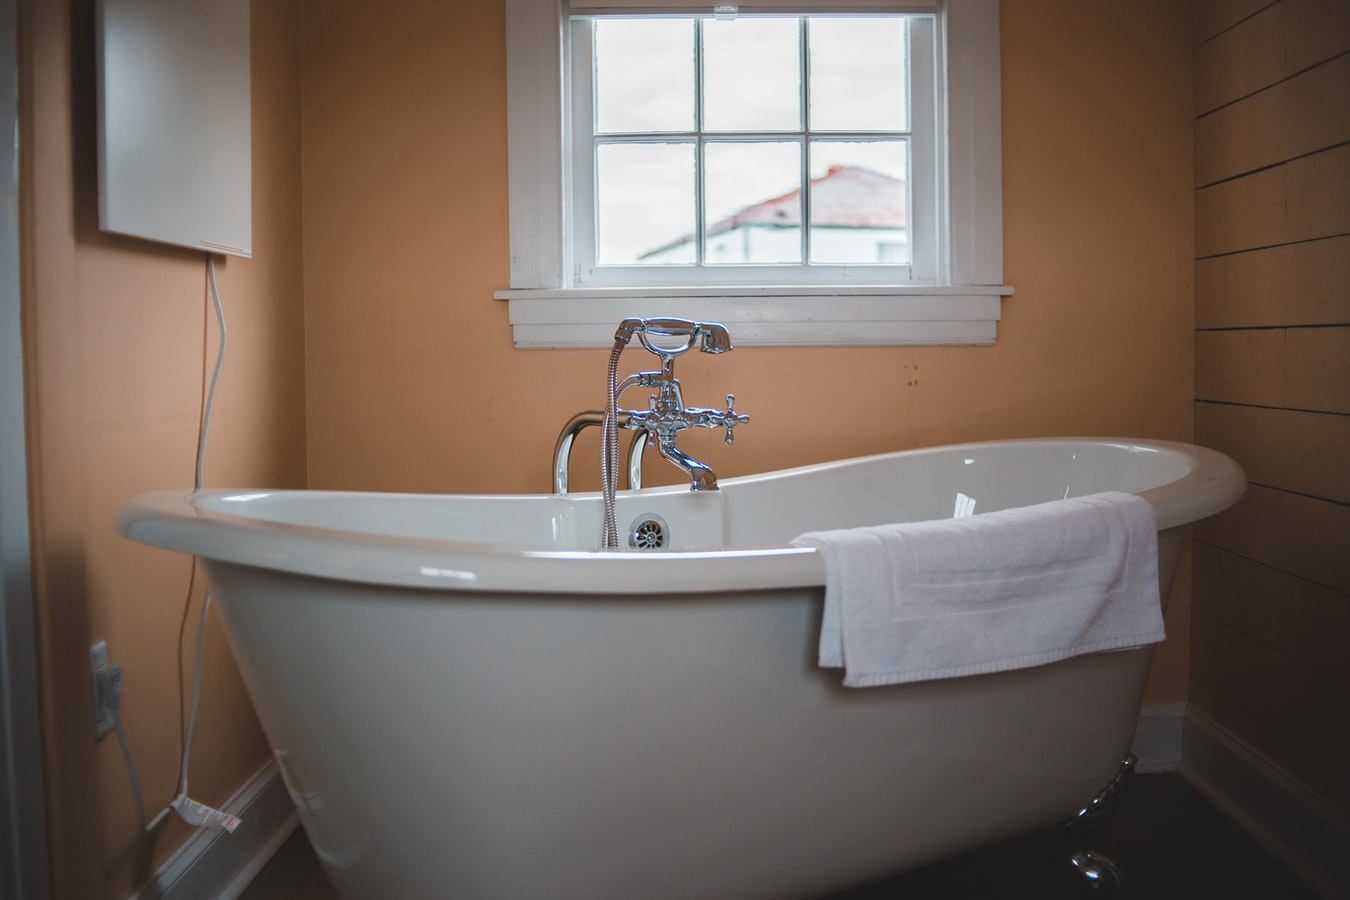 Easy Instructions on How to Install a Tub Surround